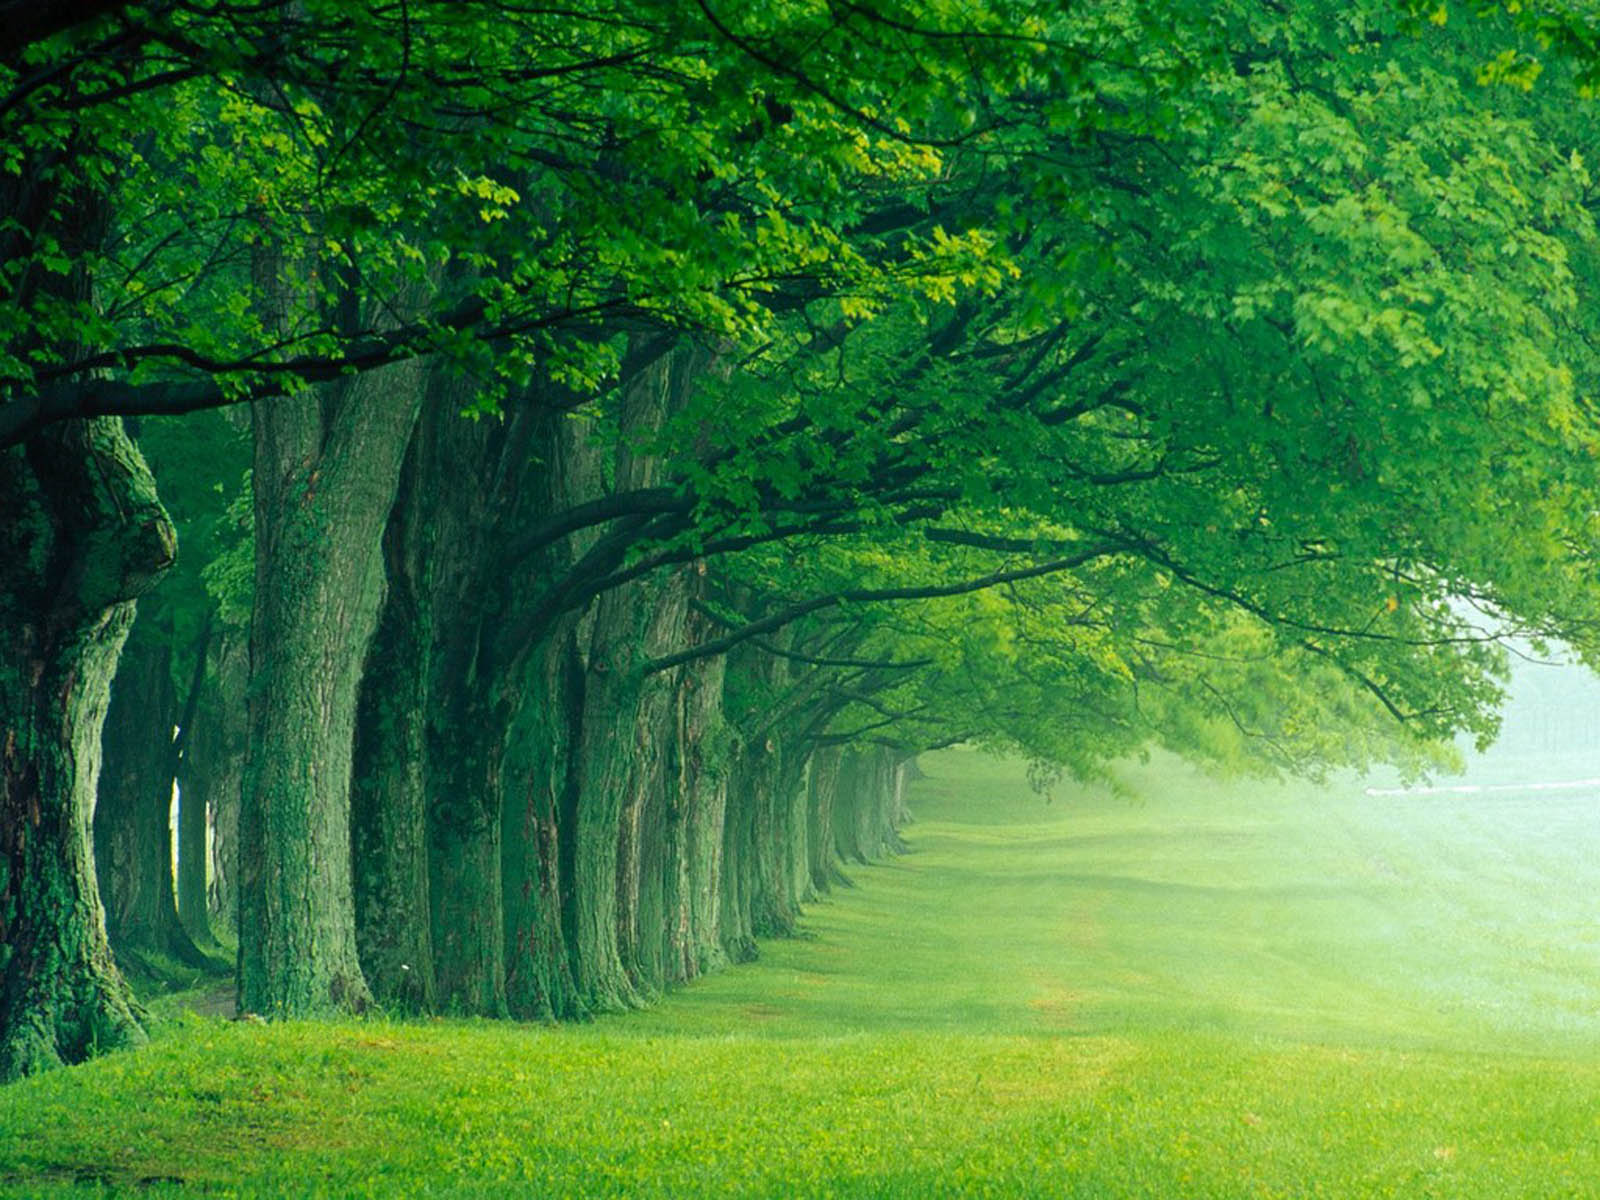 tree hd wallpapers - photo #10